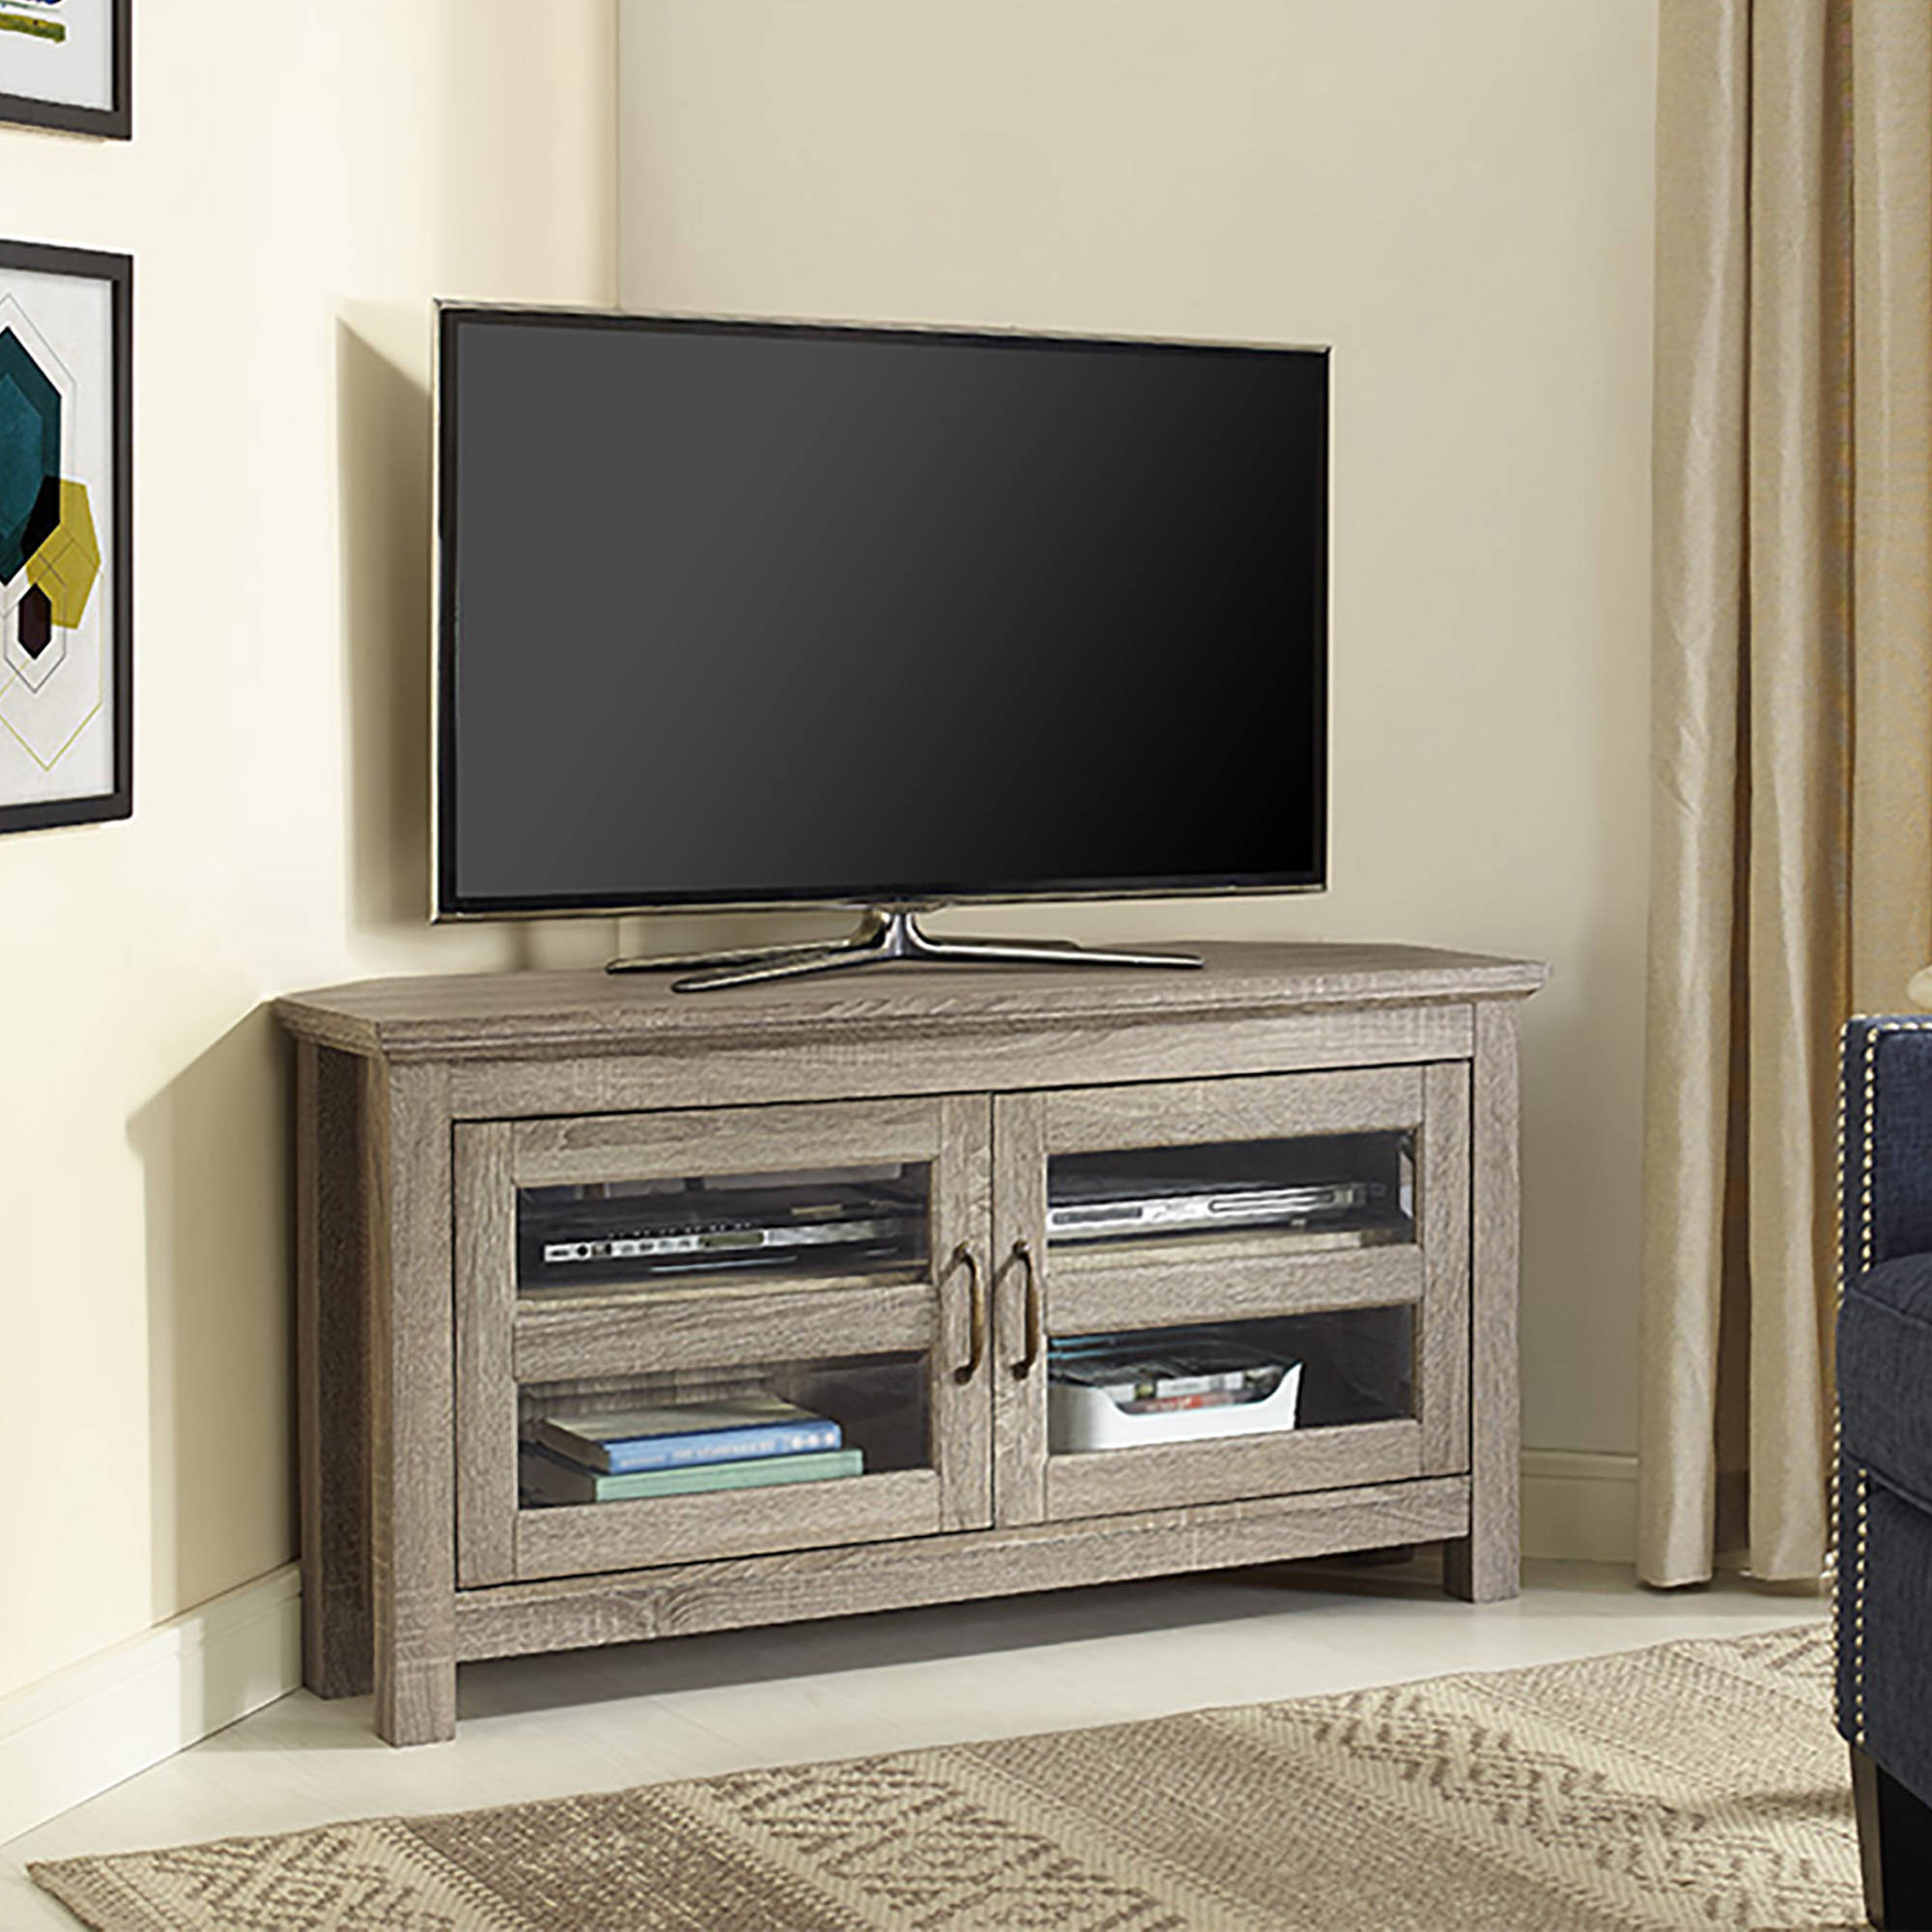 """Tv Stands For Corner With Most Recent Walker Edison Black Corner Tv Stand For Tvs Up To 48"""", Multiple (View 8 of 20)"""